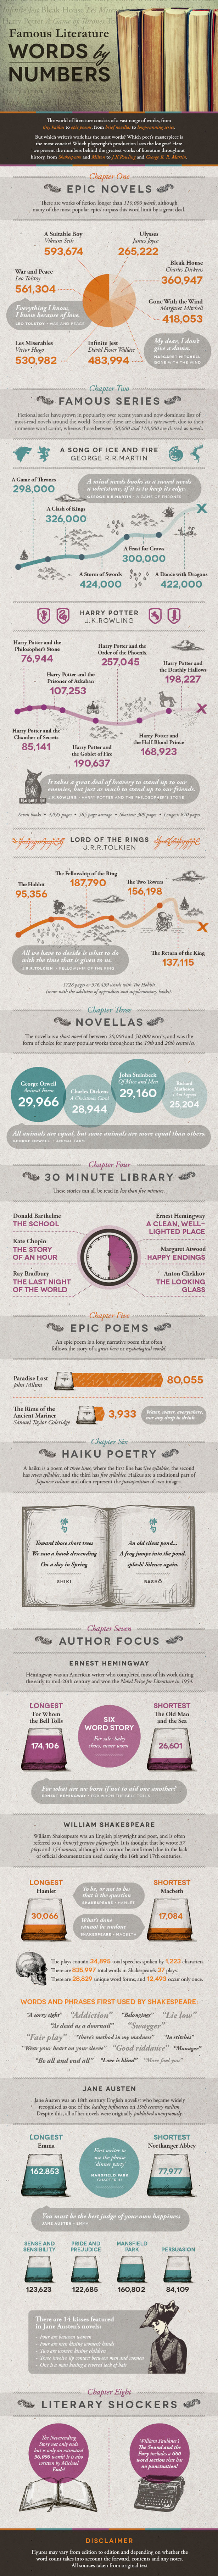 Famous Literature Words By Numbers